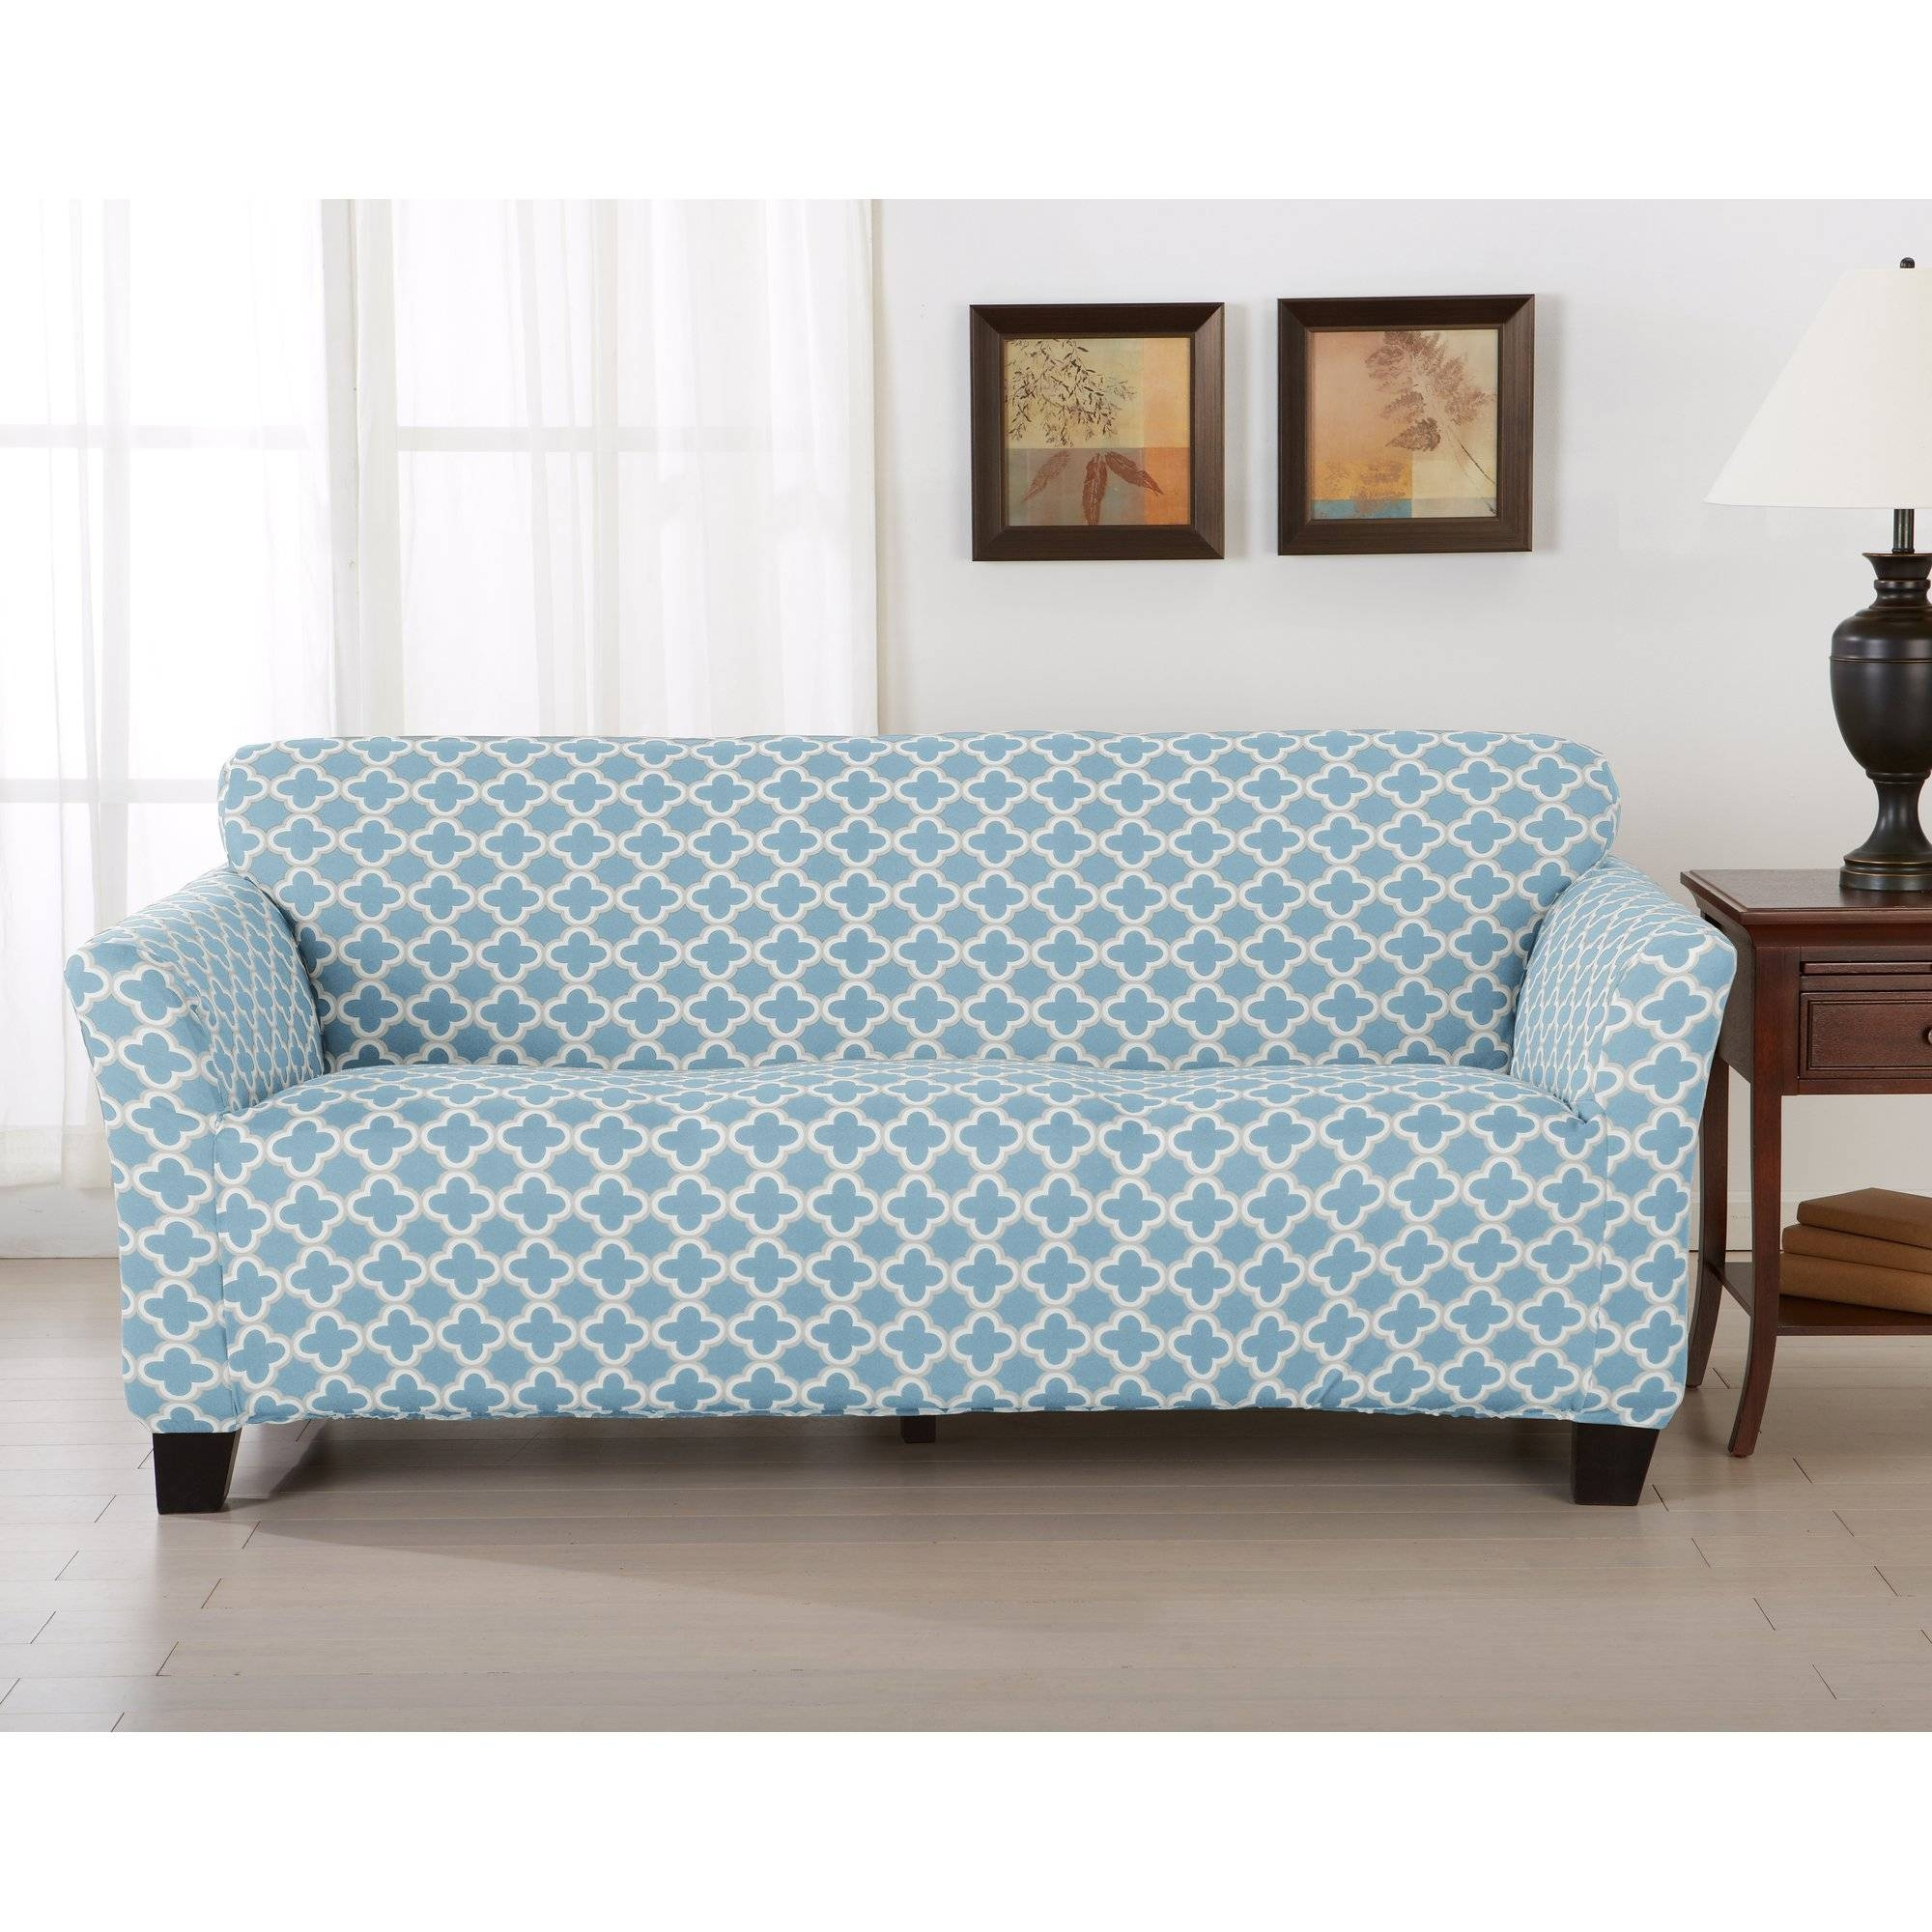 Furniture: Update Your Living Room With Best Sofa Slipcover Design throughout Teal Sofa Slipcovers (Image 7 of 30)